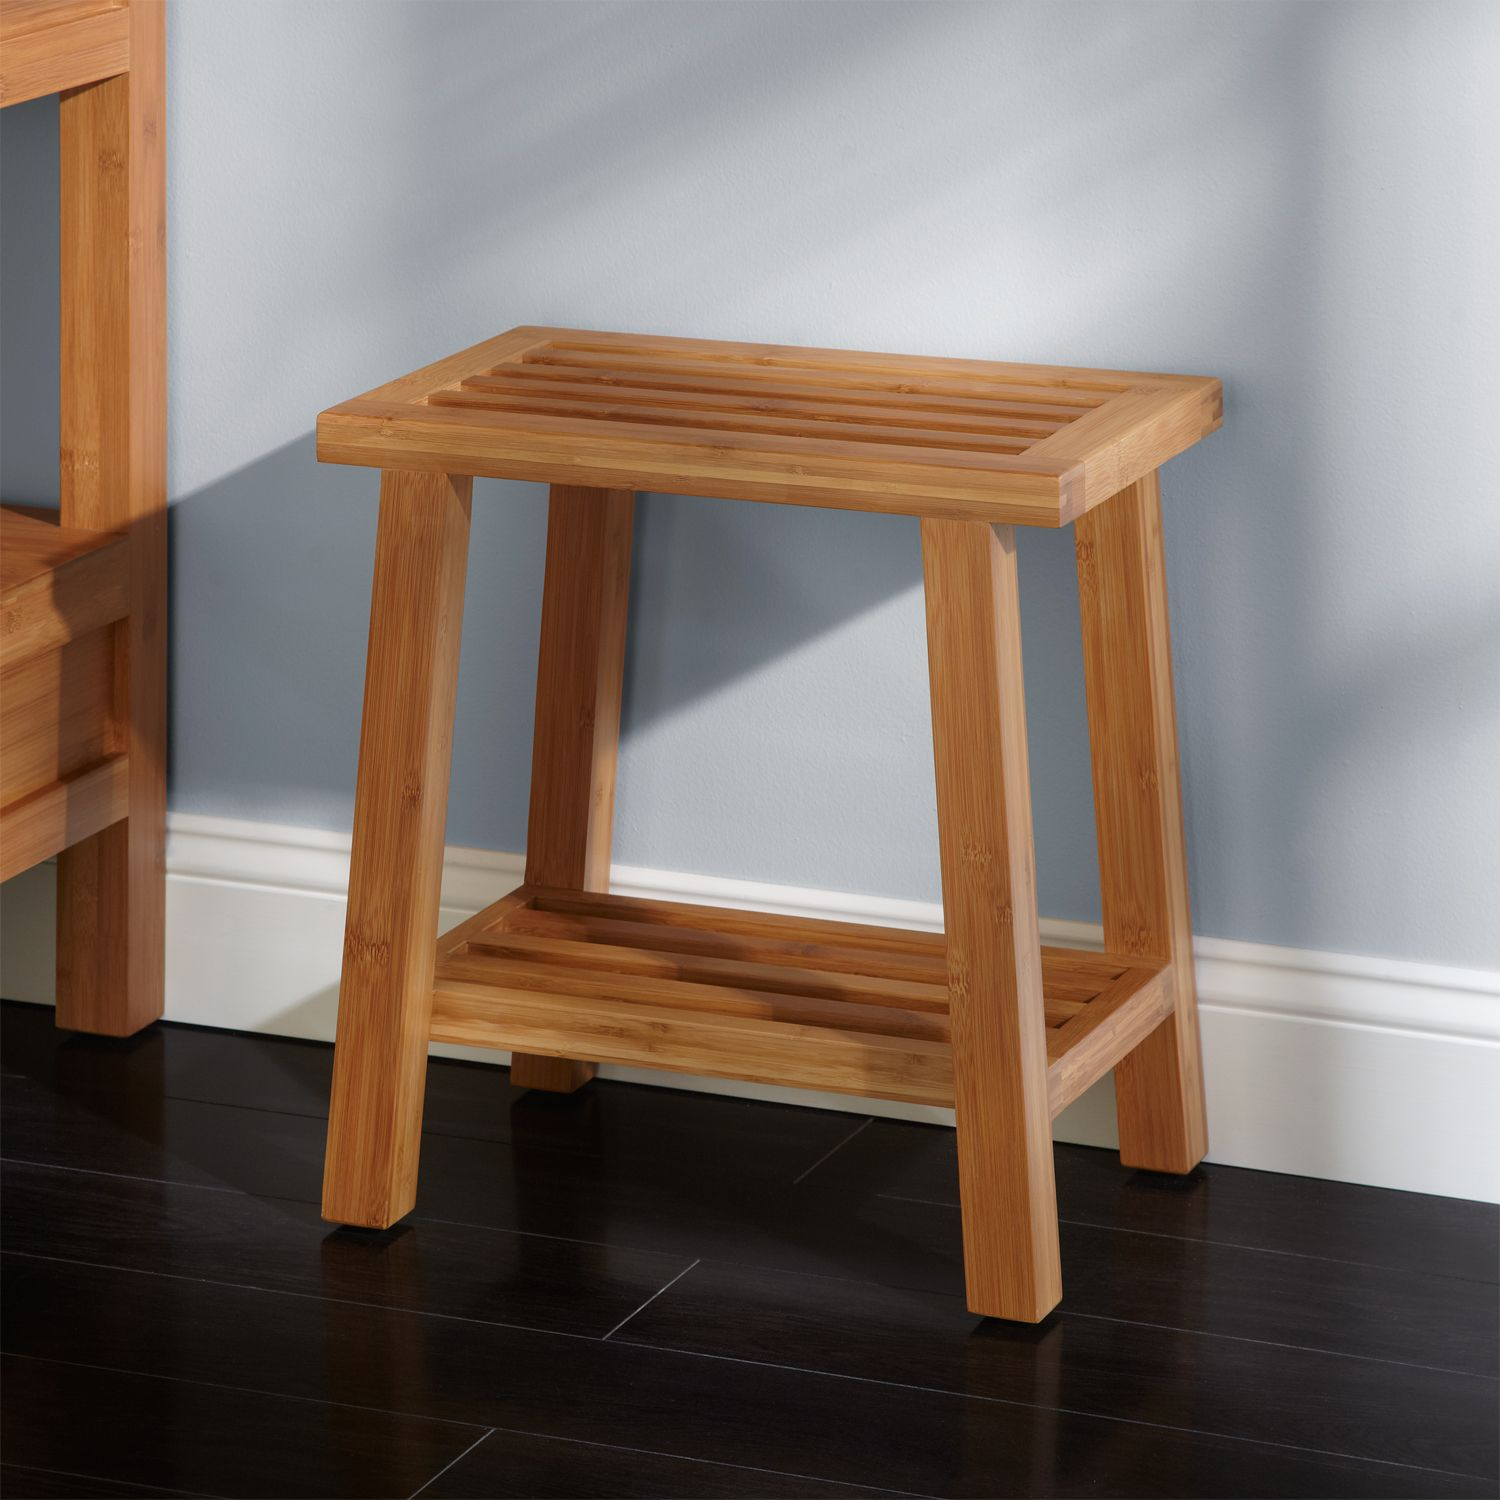 Freestanding Bamboo Slotted Bathroom Stool | Bathroom Makeovers on a ...